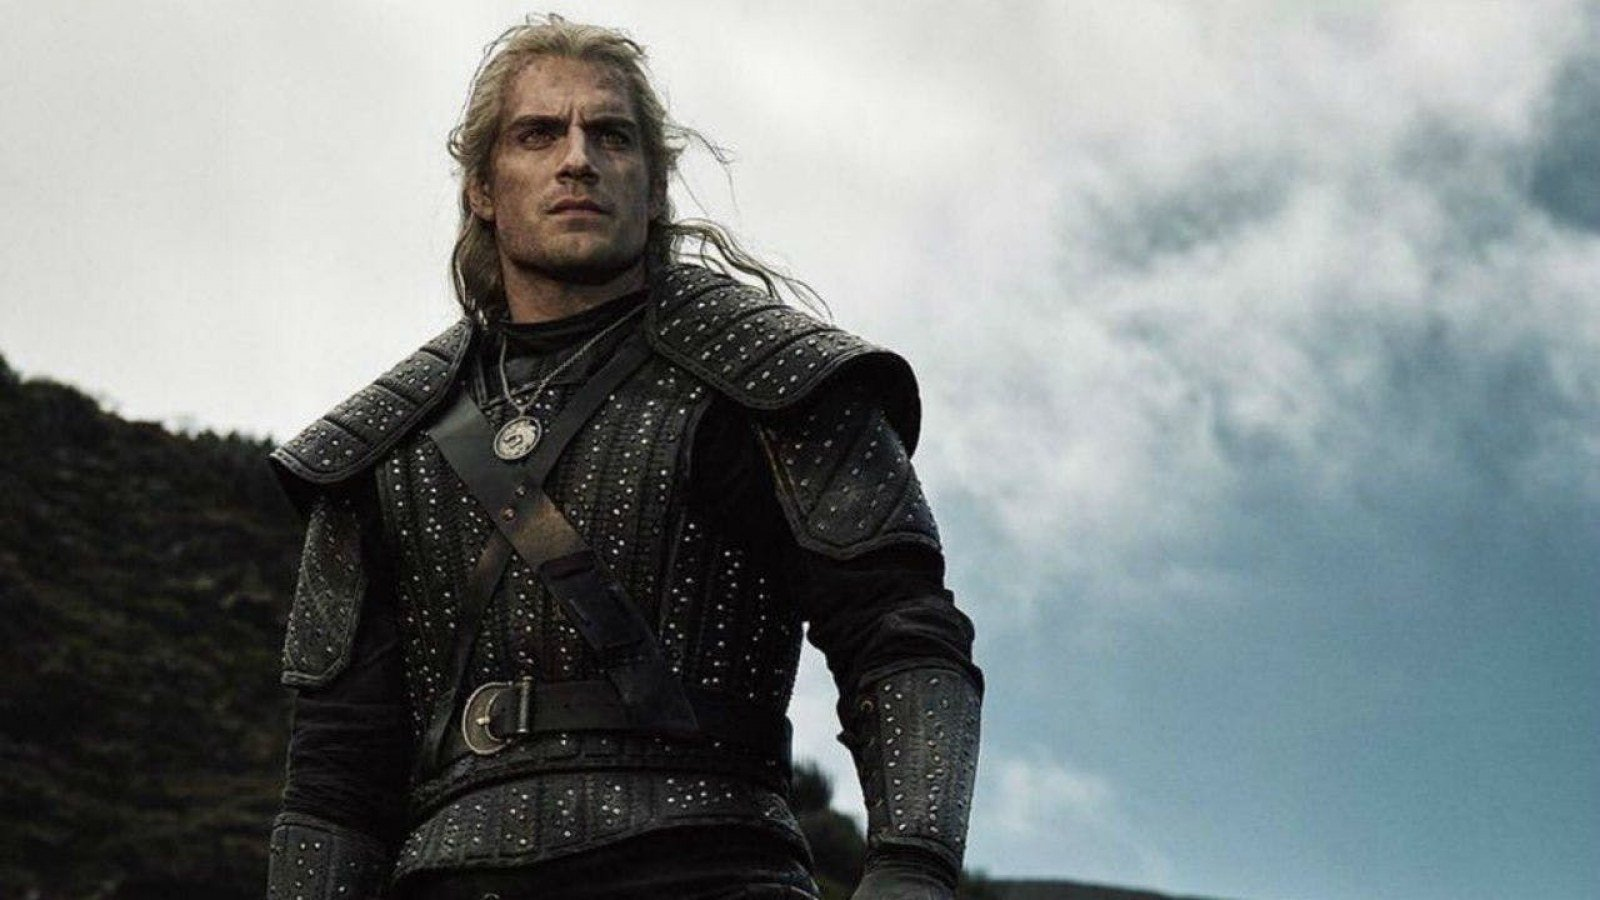 Witcher Netflix series release date